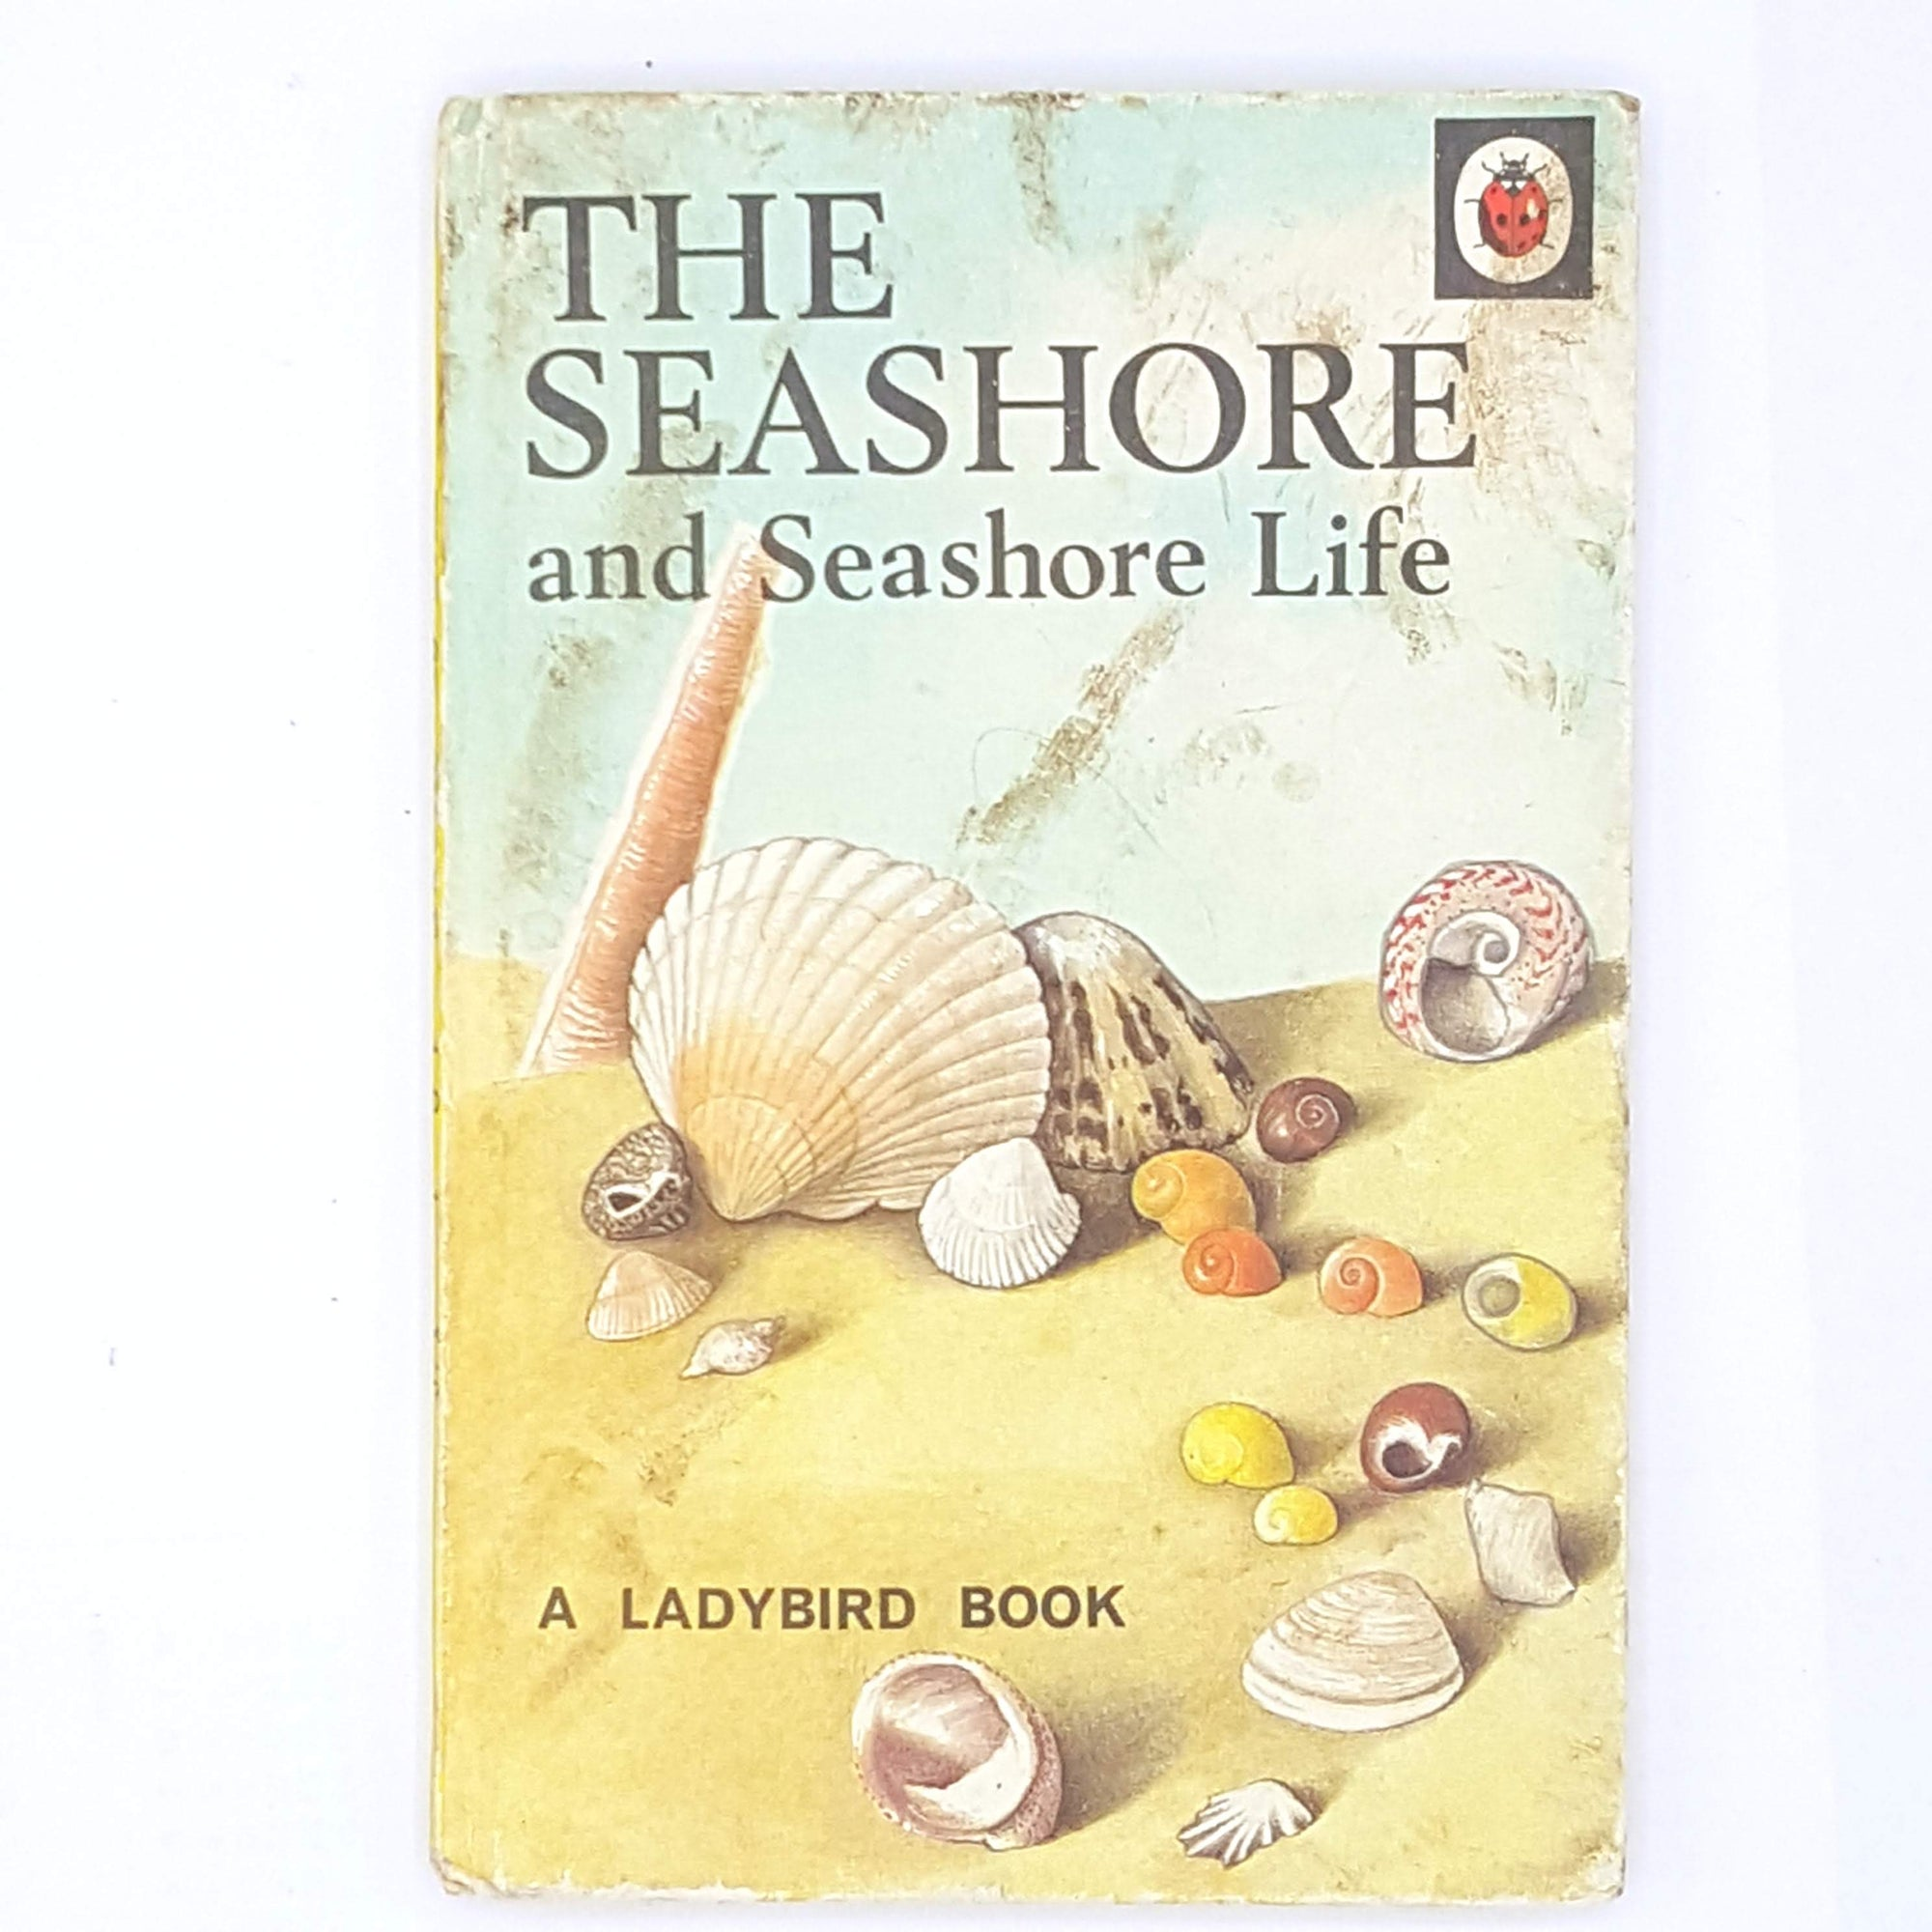 beach-seashore-life-1964-ladybird-patterned-country-house-library-old-seashore-classic-books-vintage-thrift-decorative-antique-